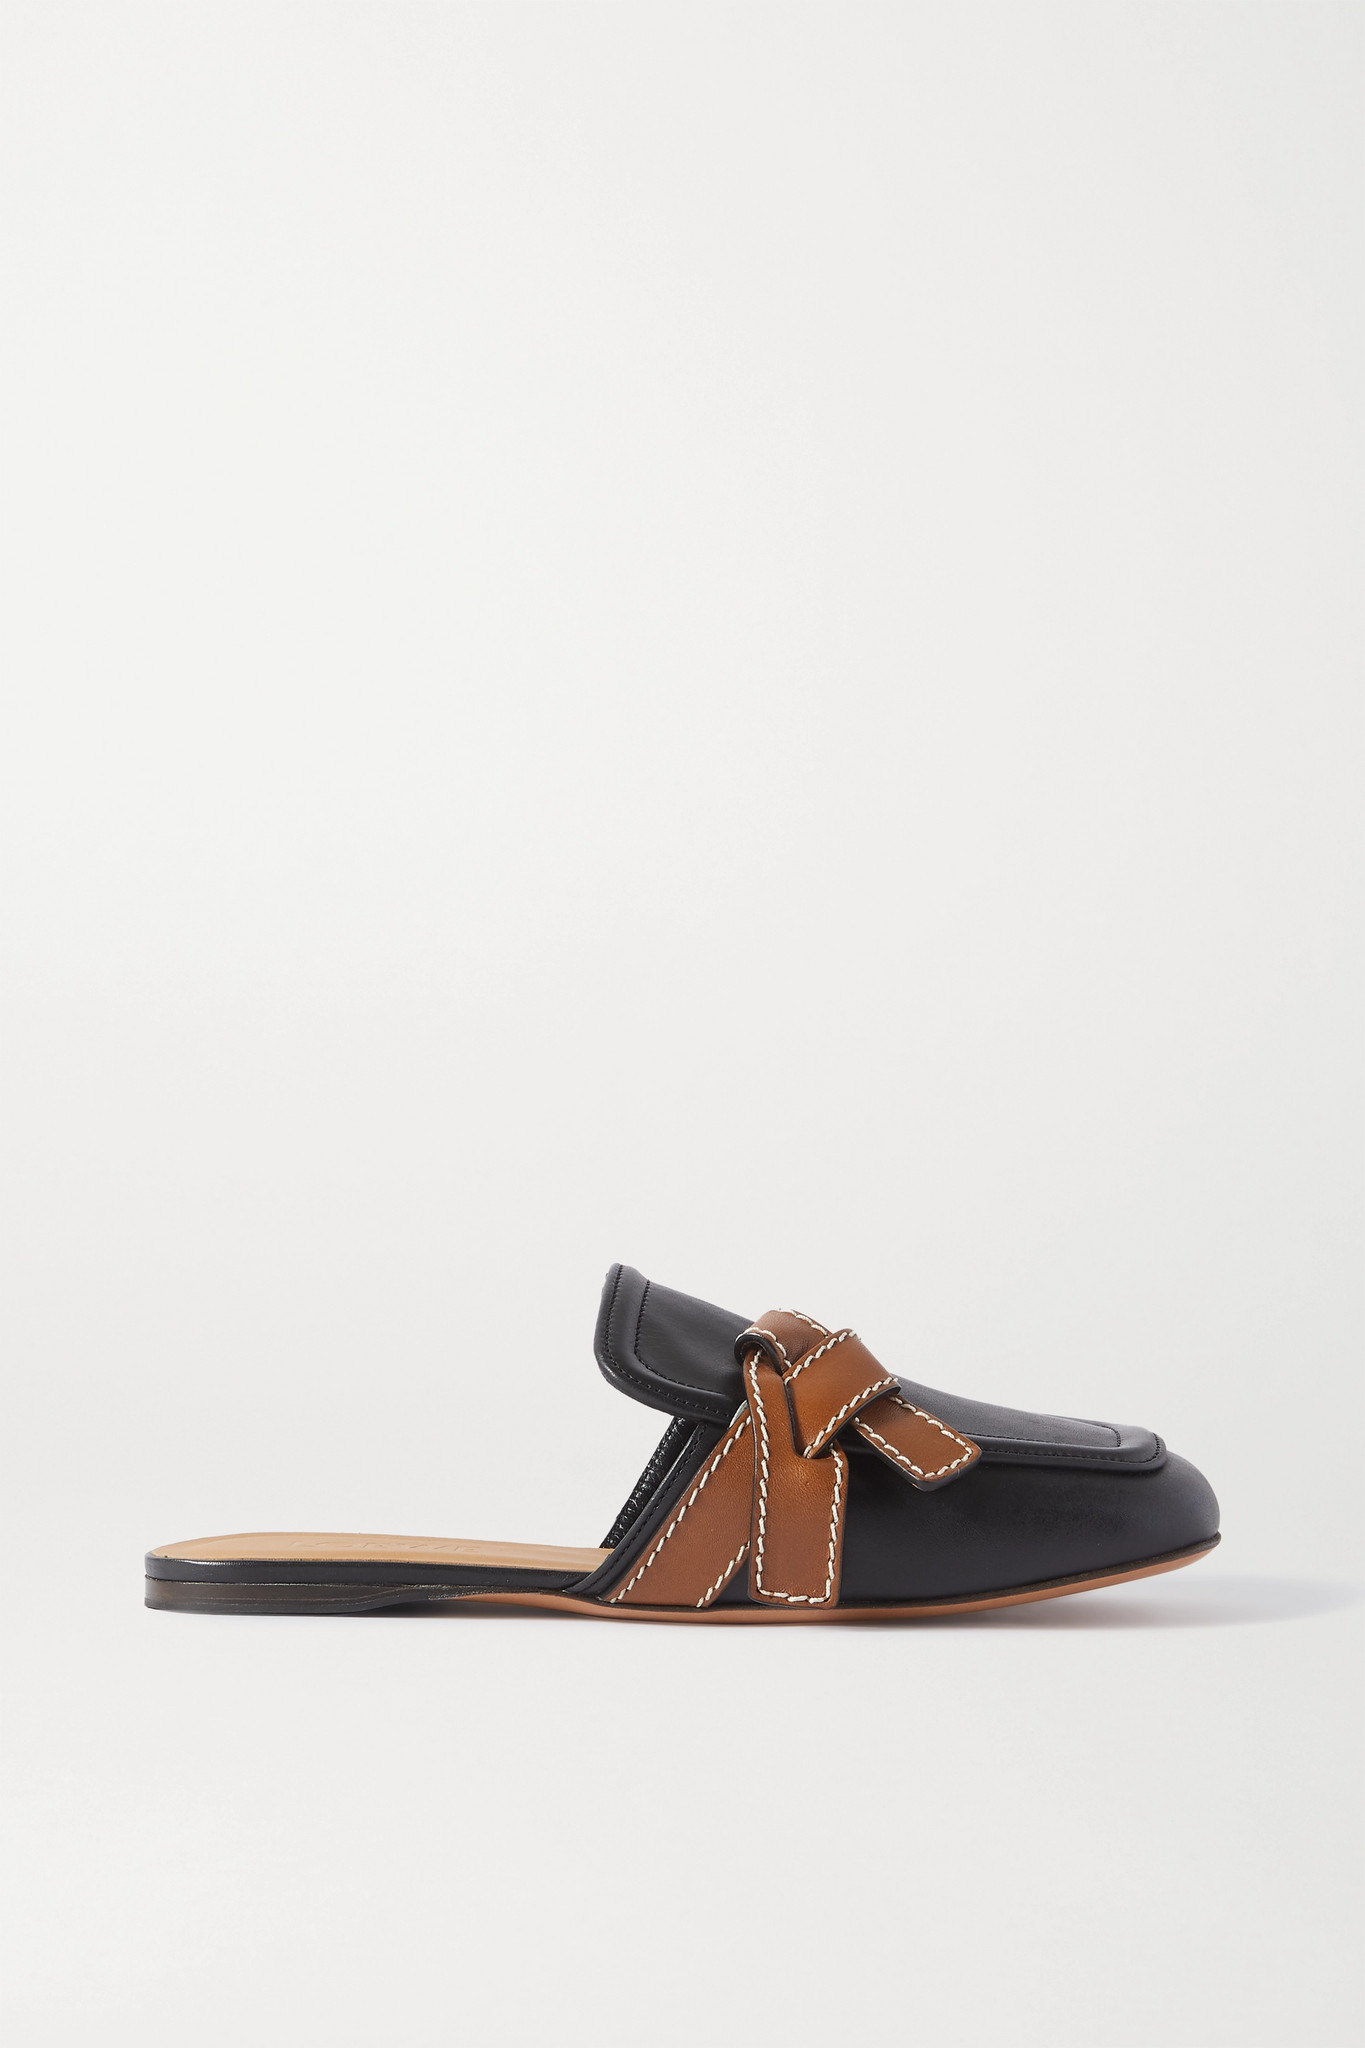 LOEWE - Gate Two-tone Topstitched Leather Loafers - Black - IT37